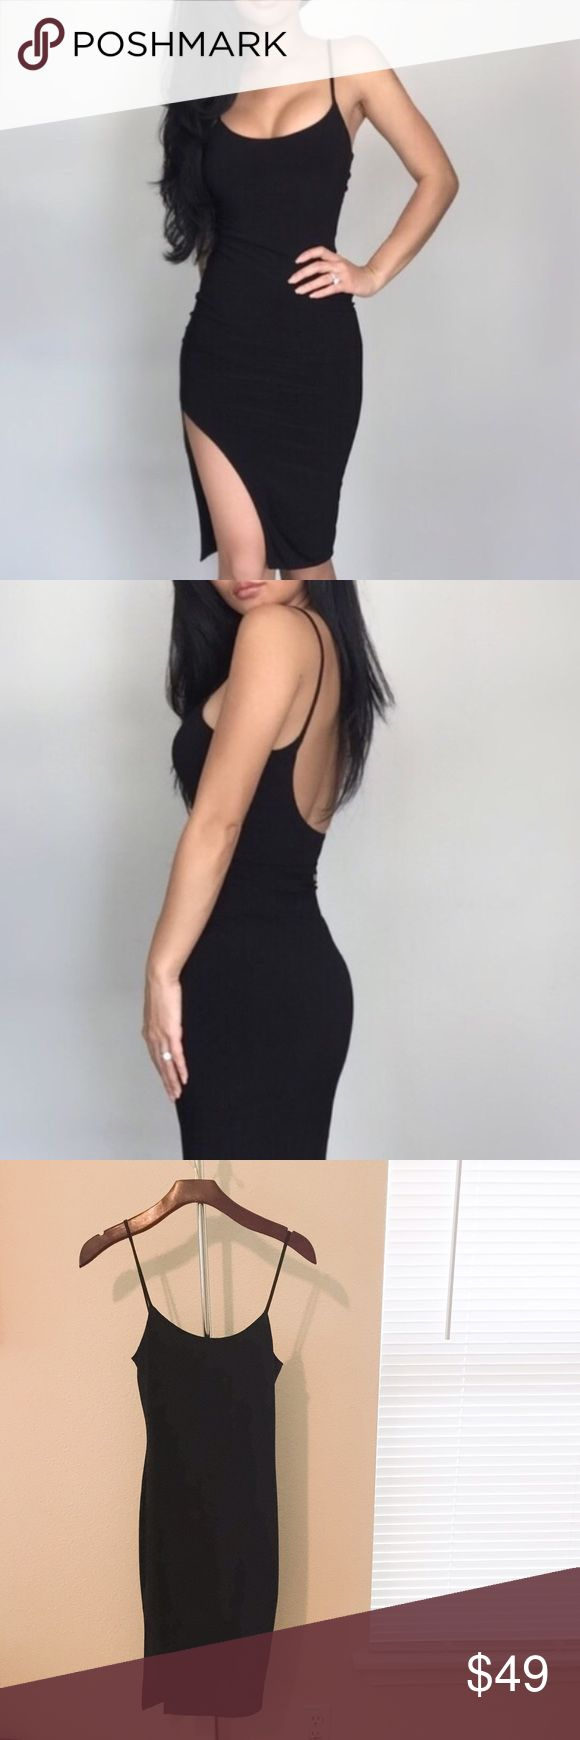 EkAttire Black Strappy Dress With Side Slit. New with tag. In excellent condition. The beautiful Elaine is the one modeling this sexy dress. I love it but I never reach for it and I really need to clean out my closet. Flattering fit. No trades. No PayPal. Price is firm unless bundled. ekAttire Dresses